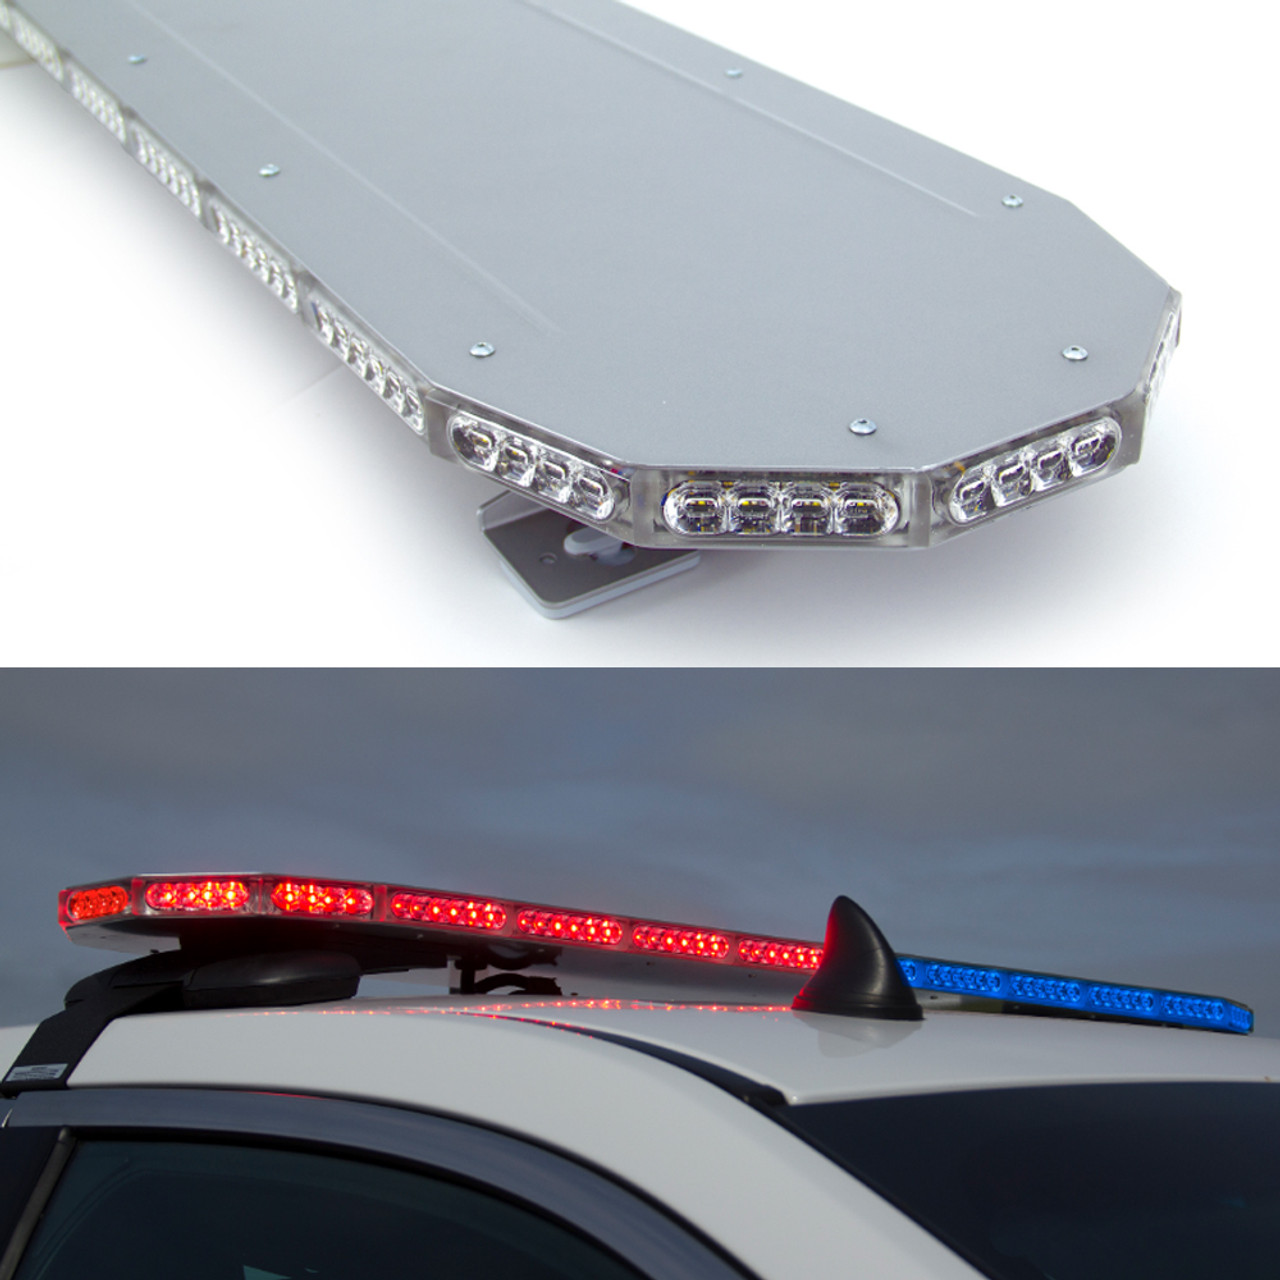 Soundoff mPower LED Light Bar for Police and Emergency Vehicles, 42 48 or 54 inch, Dual Color LEDs